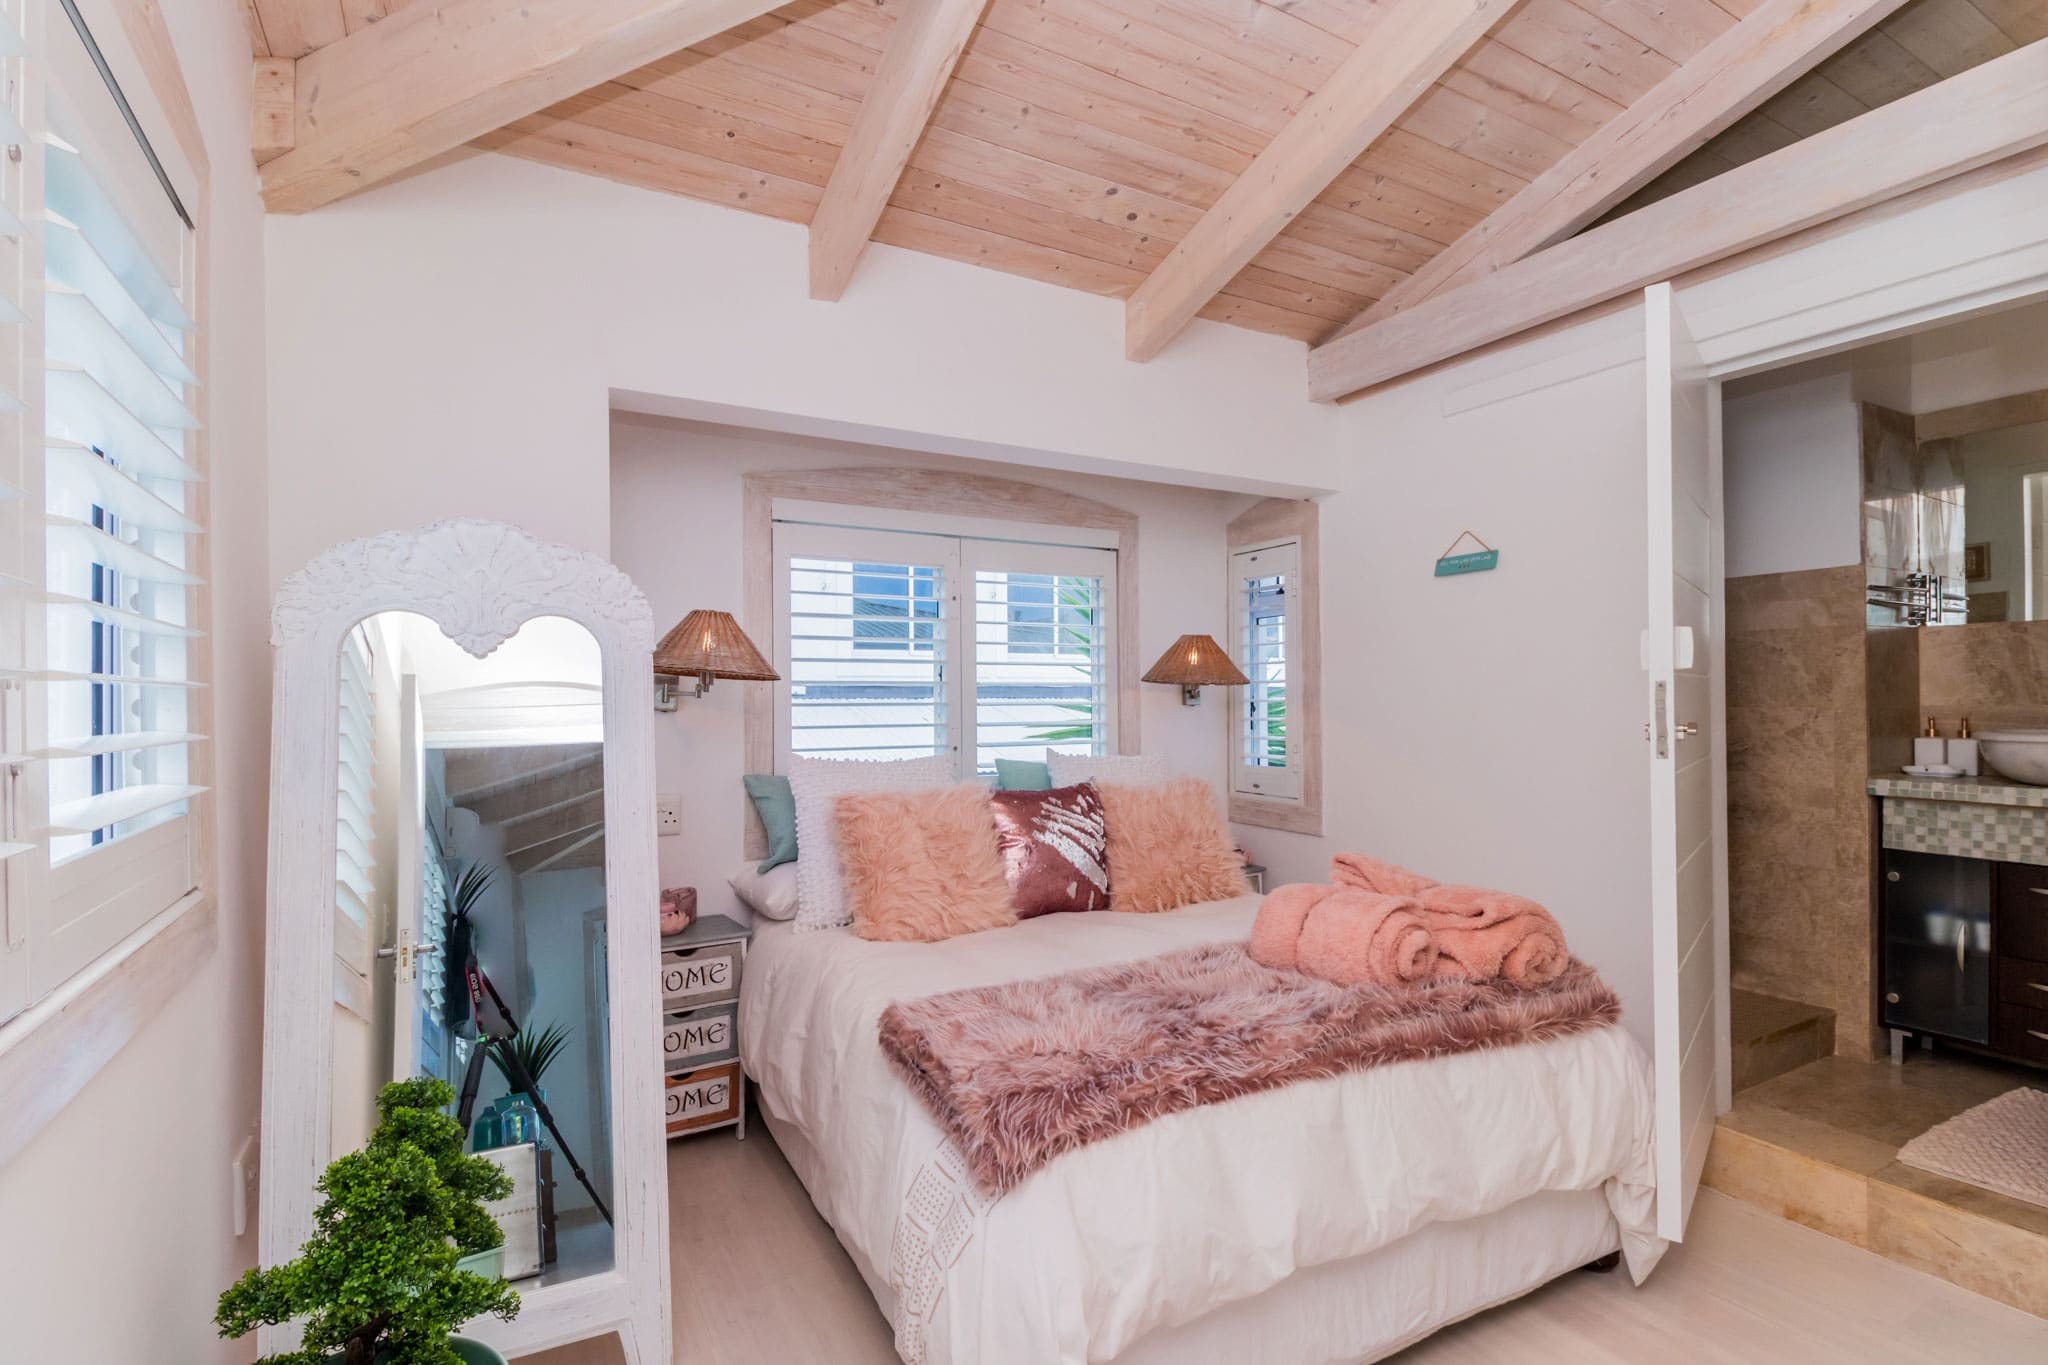 bedrooms-mountain-view-1